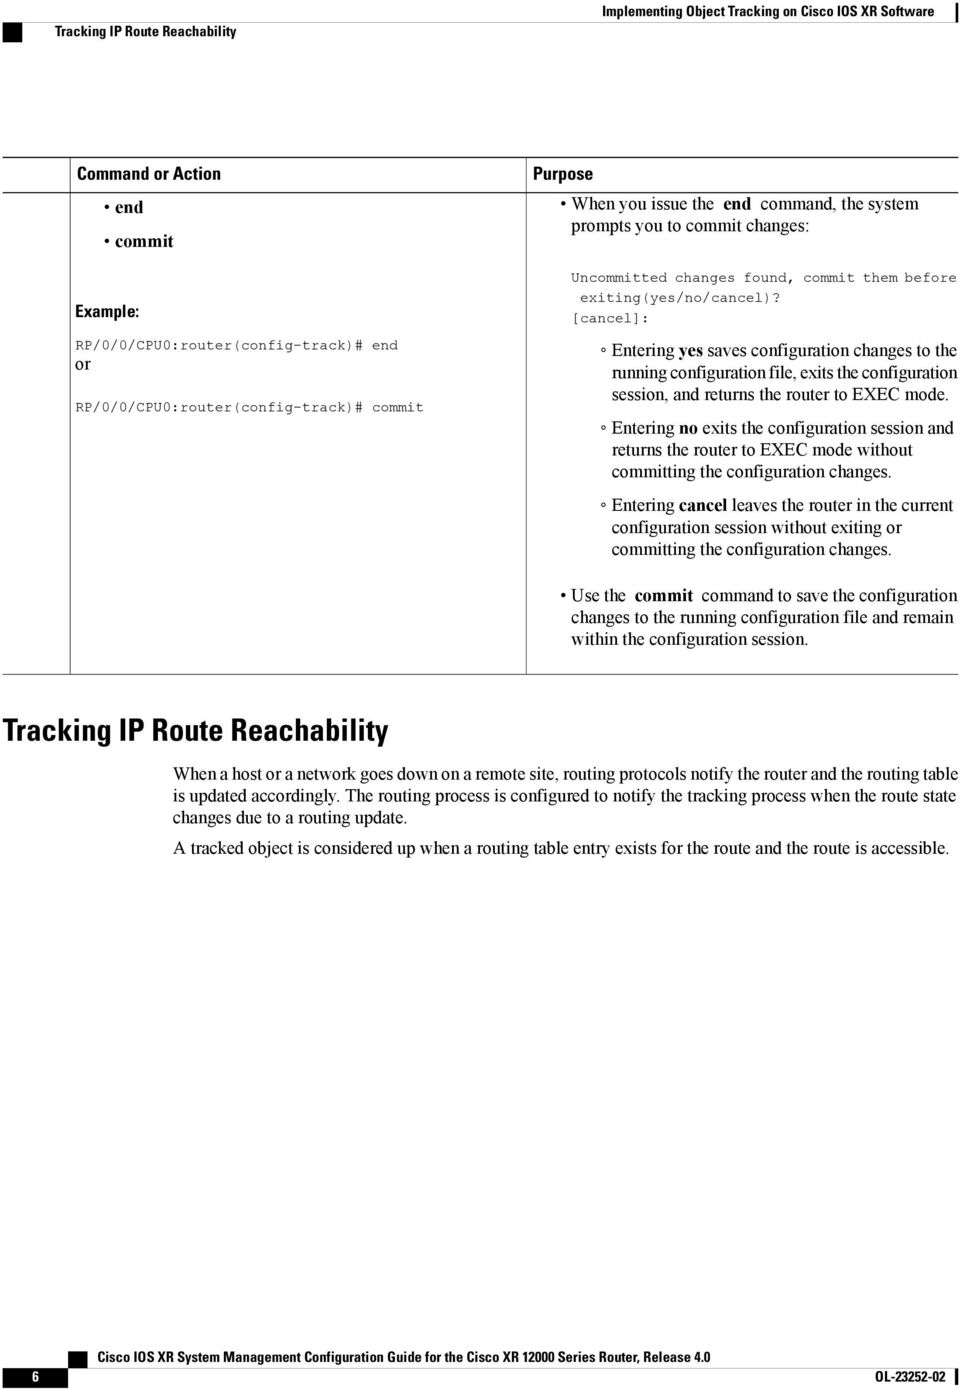 Implementing Object Tracking on Cisco IOS XR Software - PDF